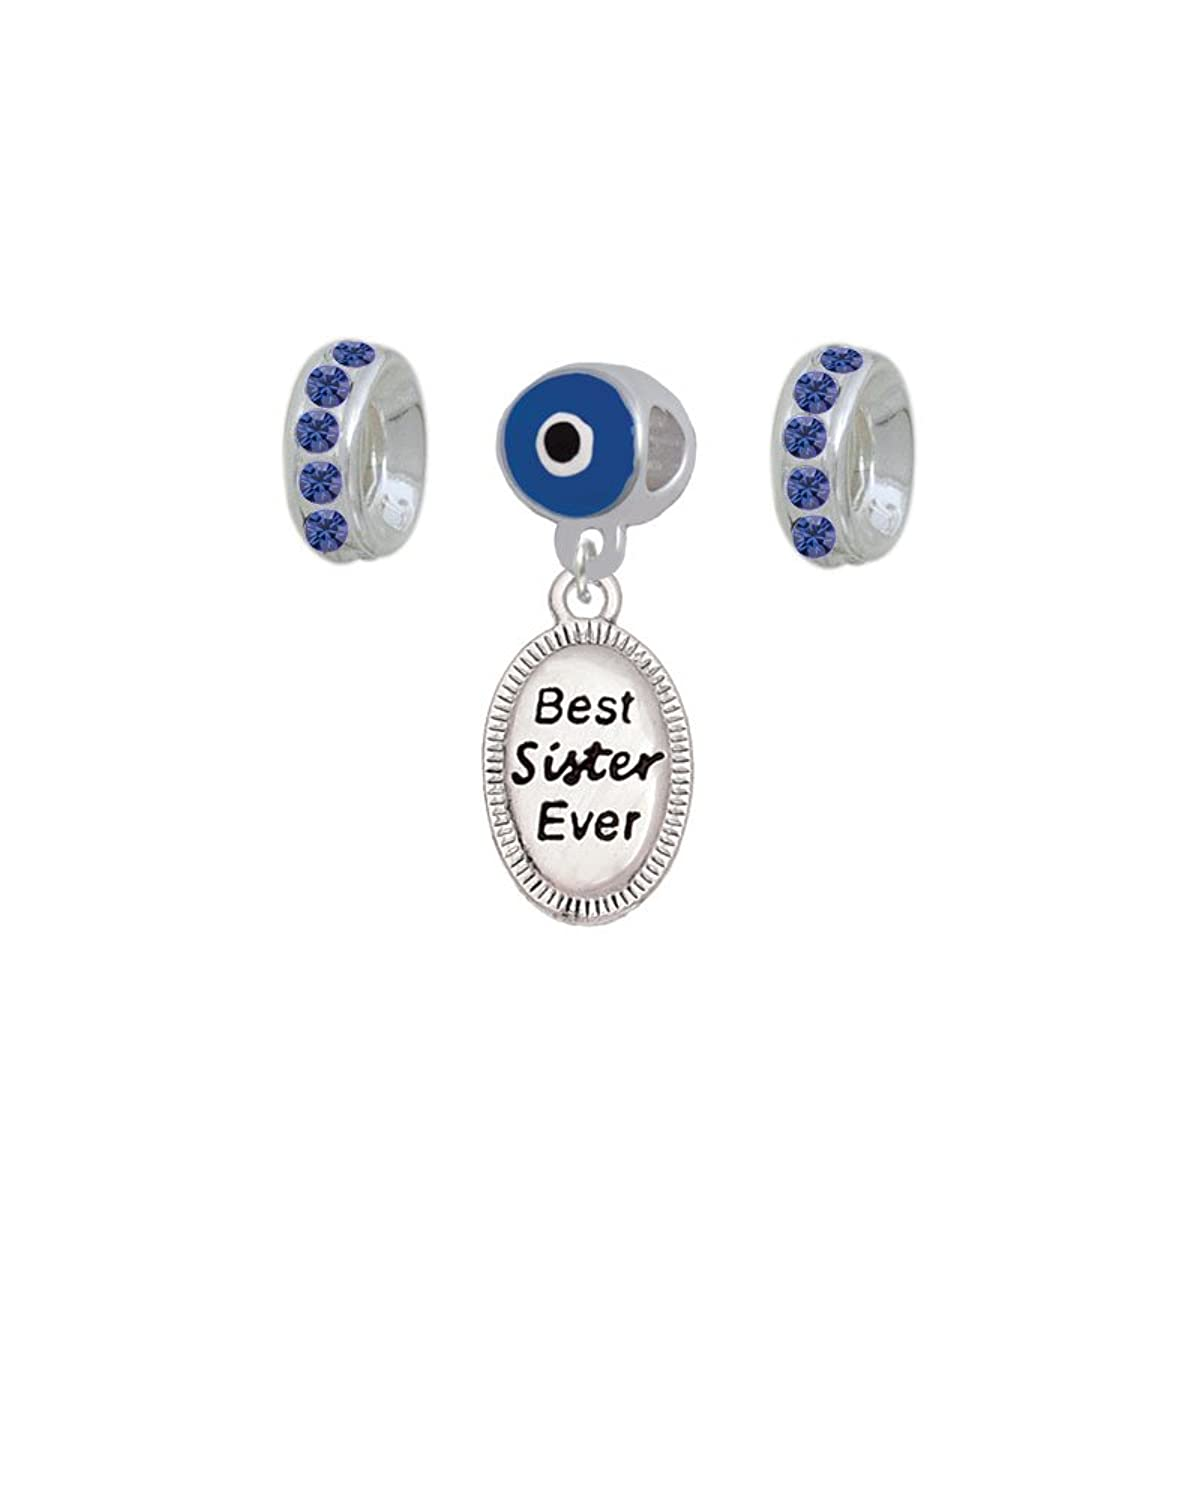 Best Sister Ever Oval Evil Eye Charm Hanger with Crystal Rondelle Beads (Set of 3)